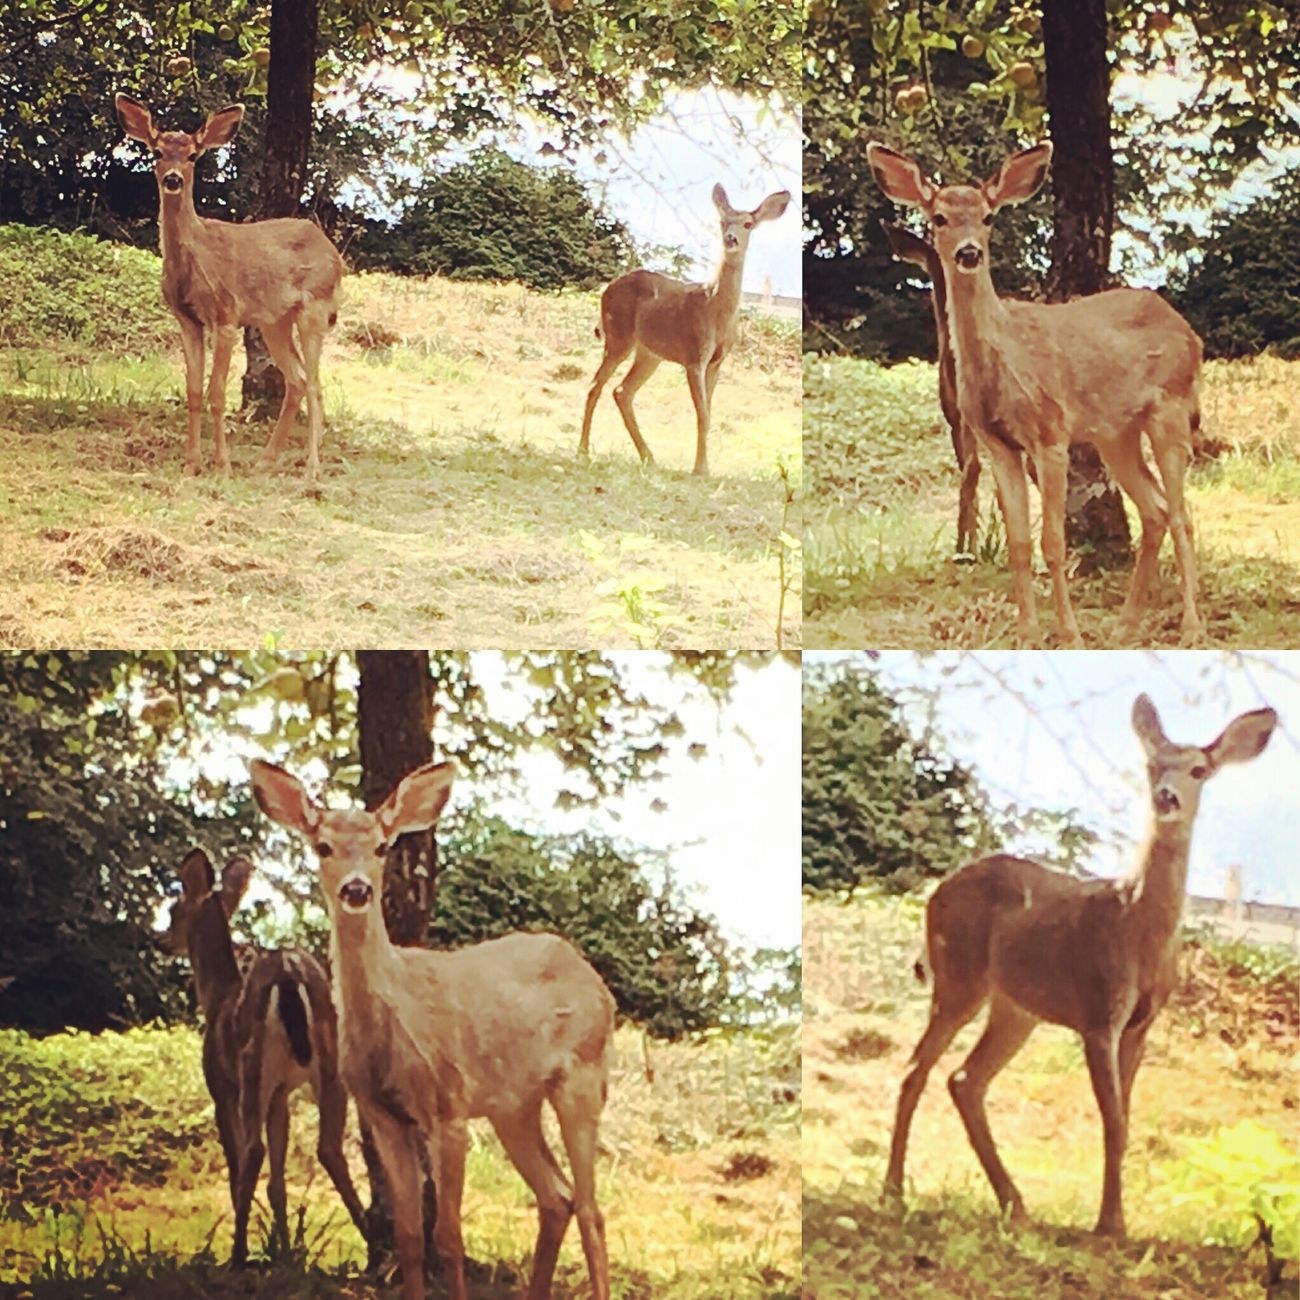 Deer Sighting Baby Deer Sweet Moments